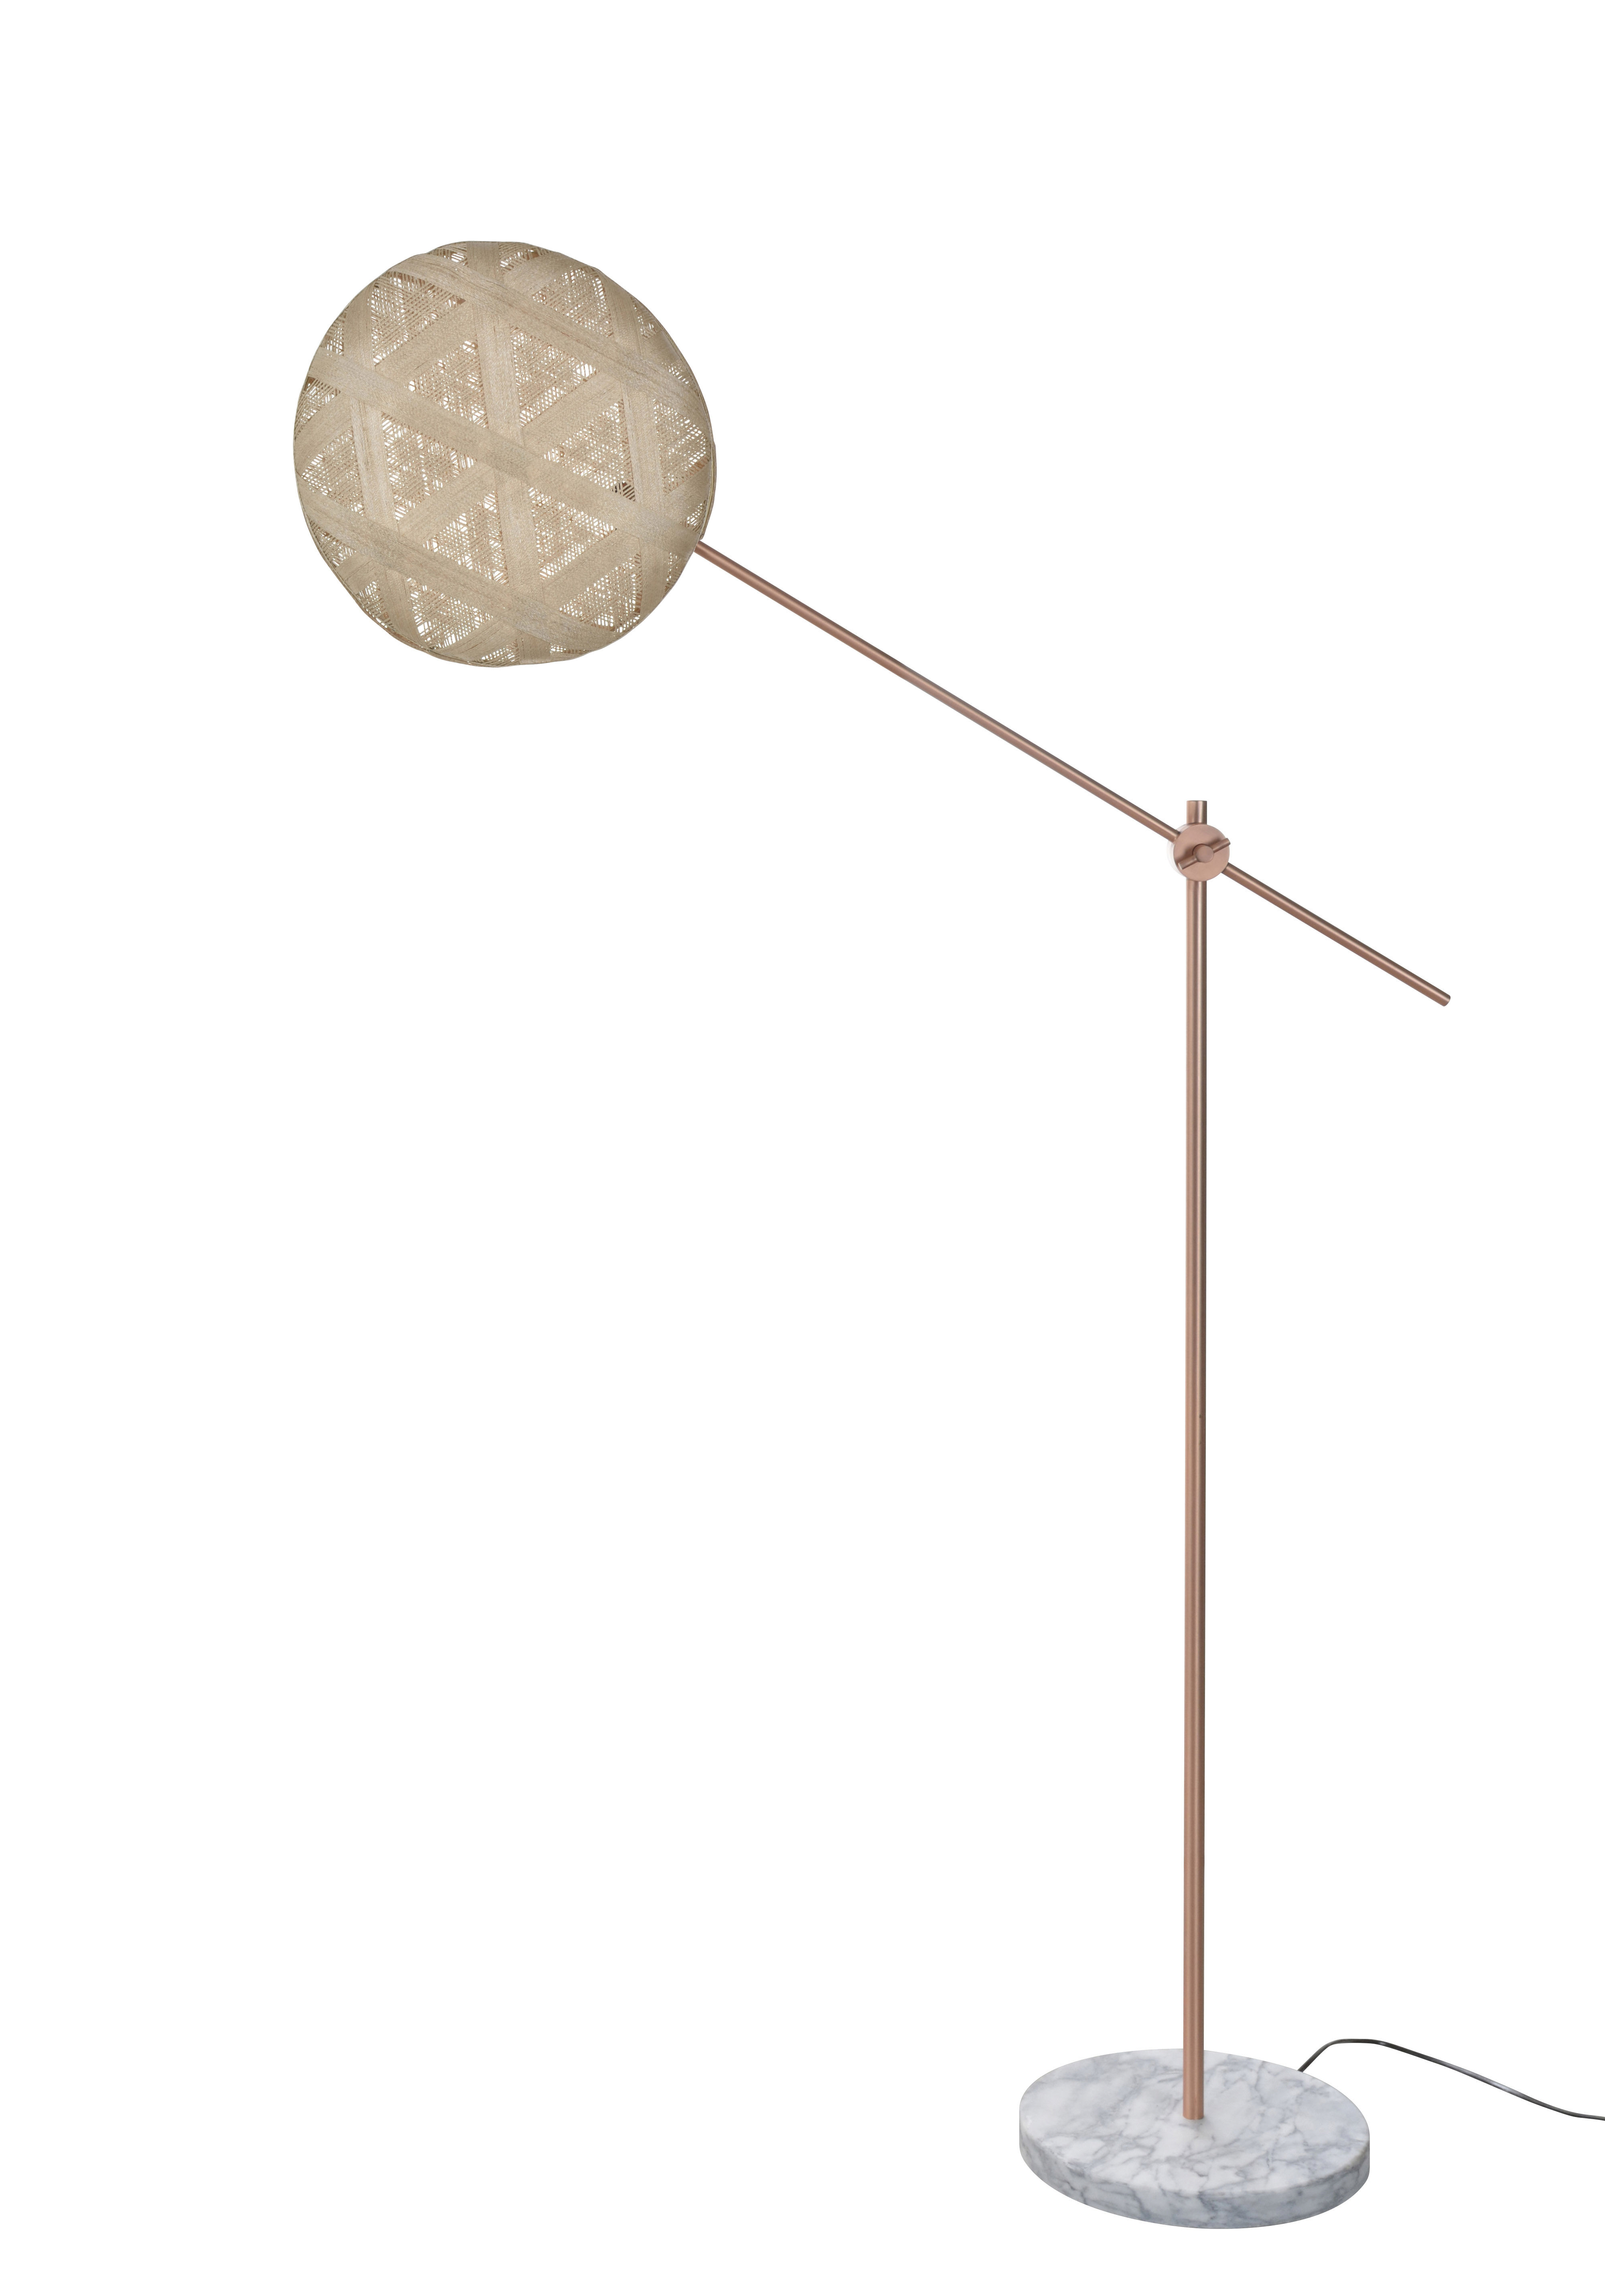 Lighting - Floor lamps - Chanpen Hexagon Floor lamp - Ø 36 cm - Triangle patterns by Forestier - Natural / Copper - Marble, Metal, Woven acaba